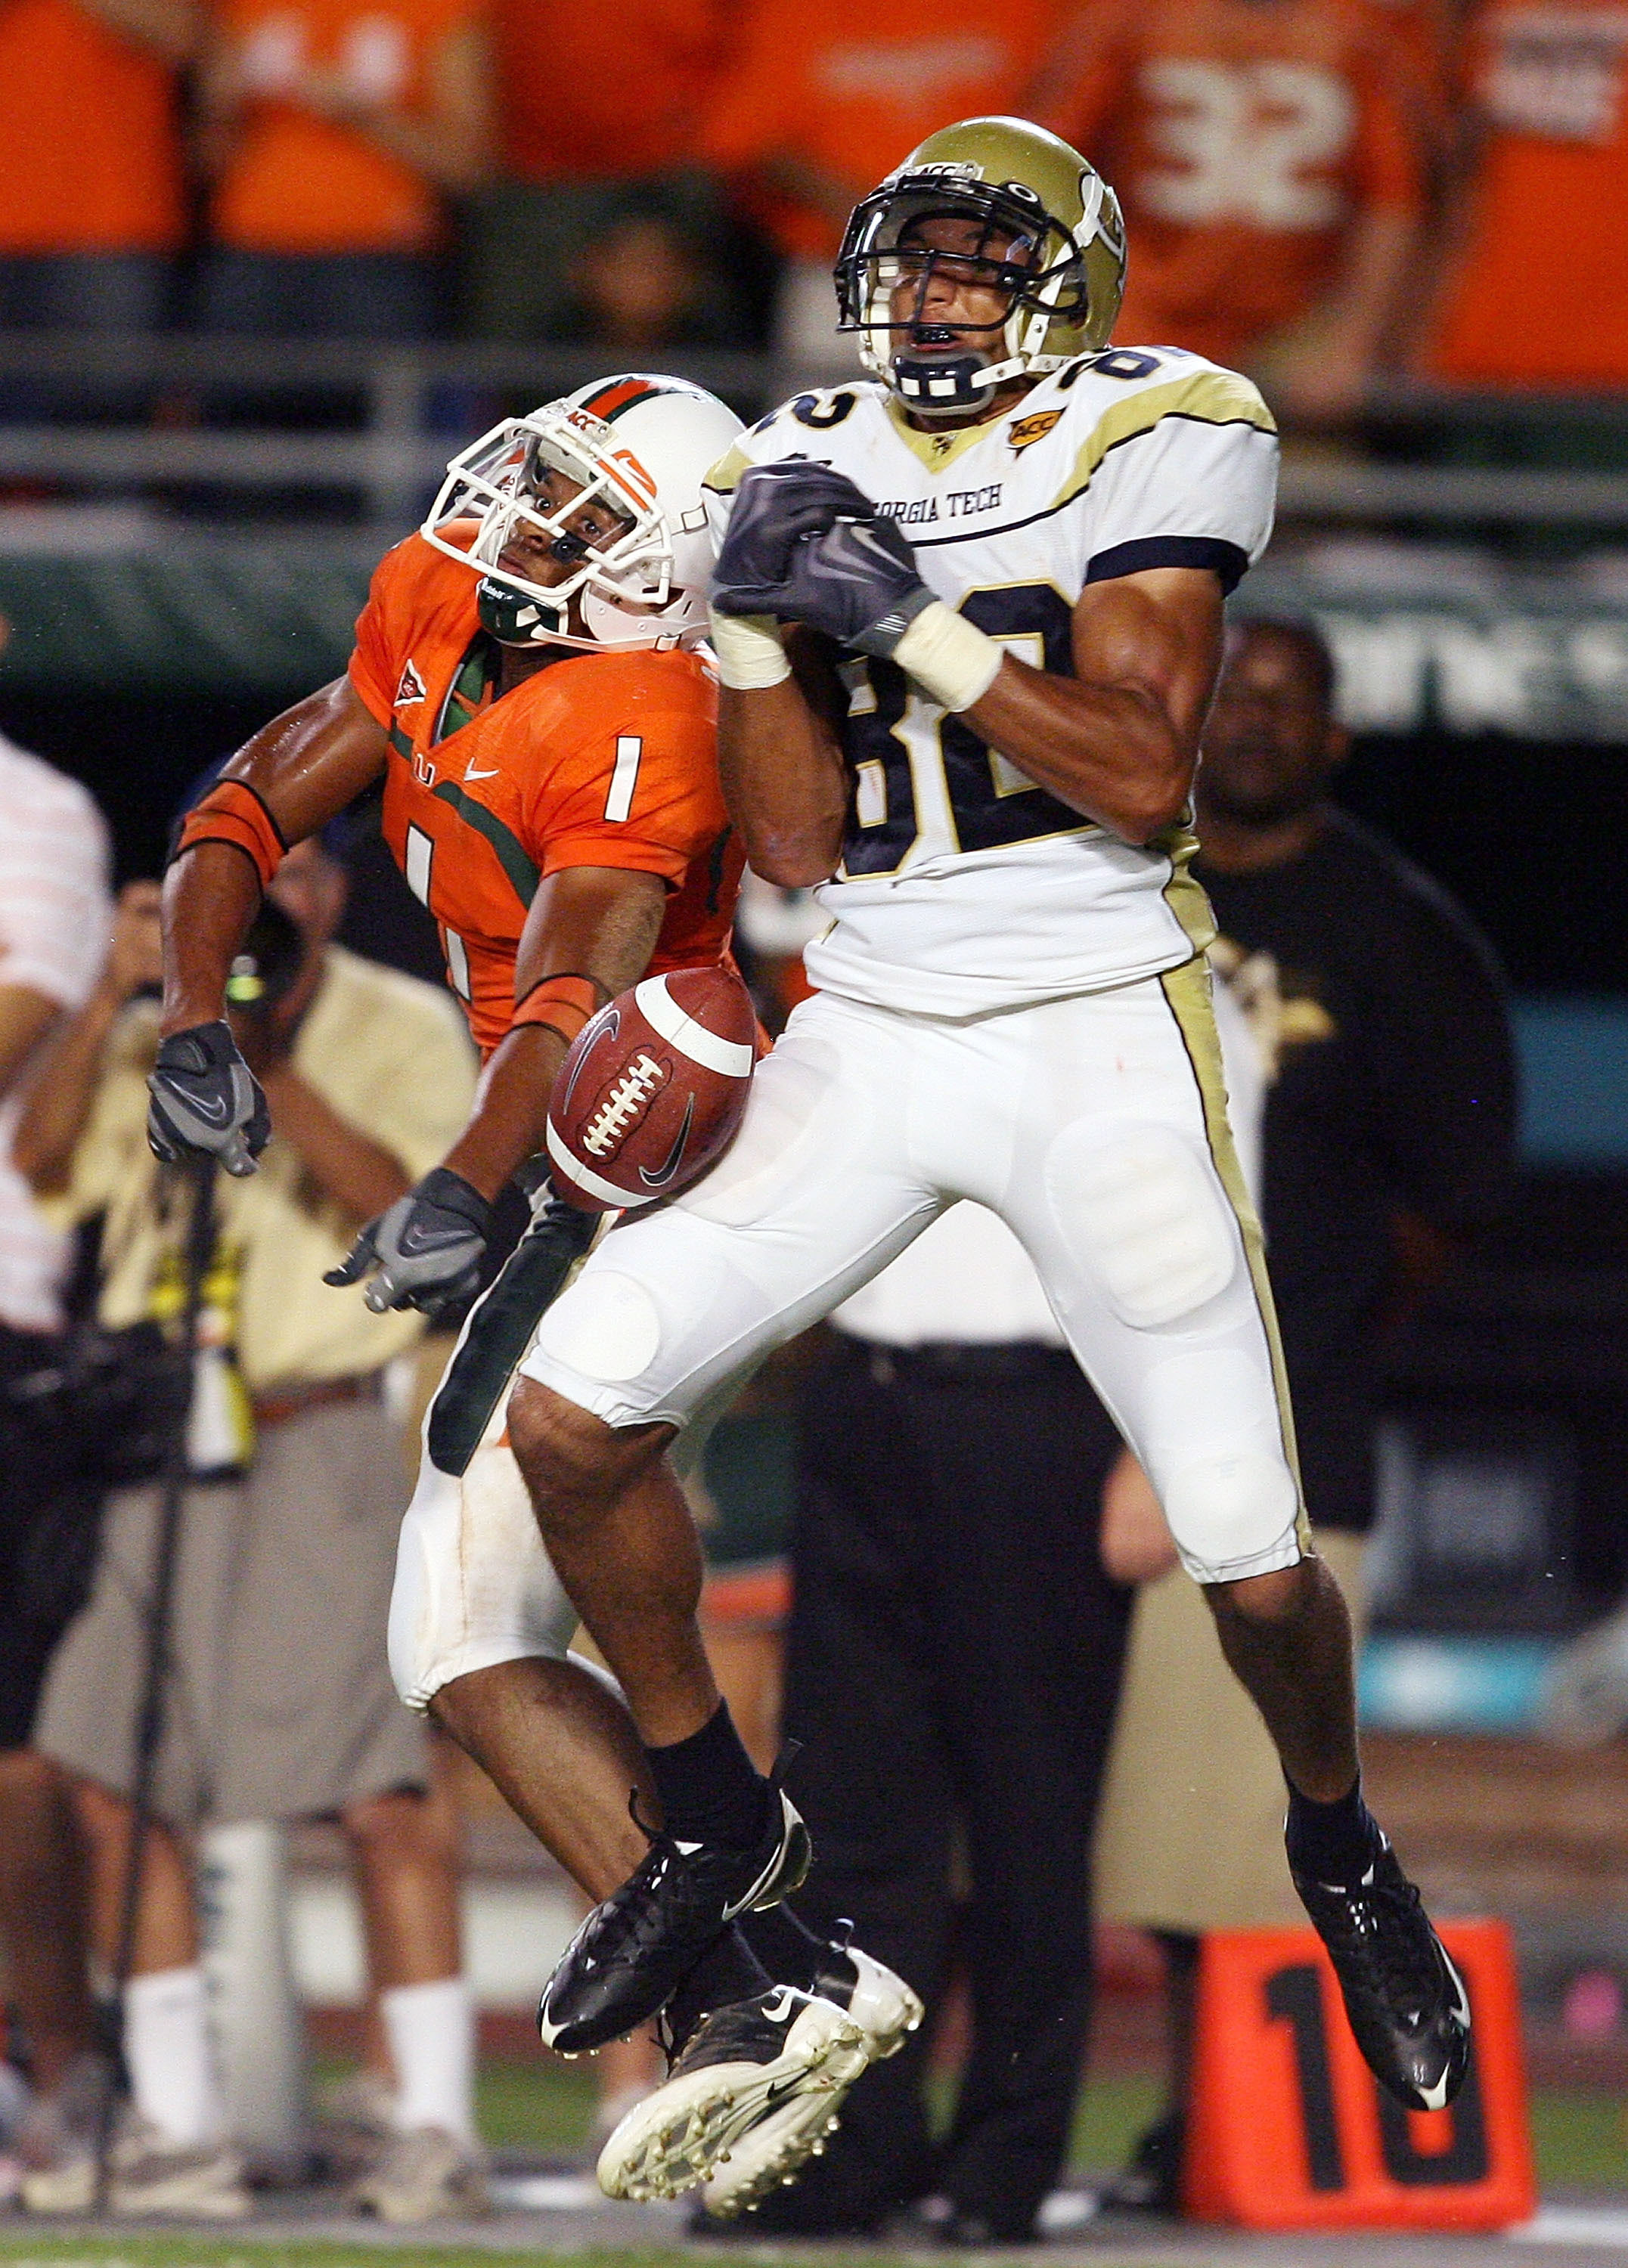 FORT LAUDERDALE, FL - SEPTEMBER 17:  Defensive back Brandon Harris #1 of the Miami Hurricanes breaks up a pass intended for wide receiver Kevin Cone #82 of the Georgia Tech Yellow Jackets at Land Shark Stadium on September 17, 2009 in Fort Lauderdale, Flo